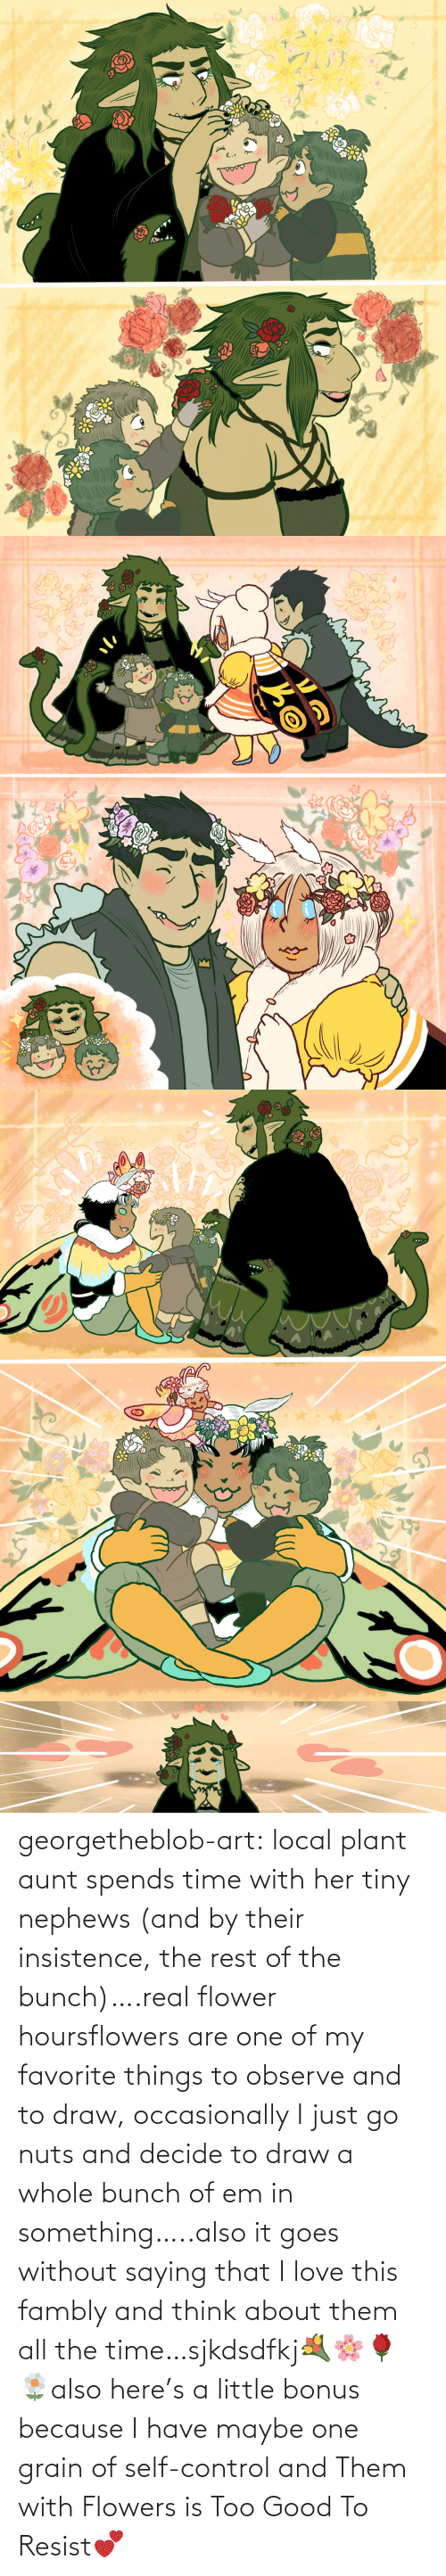 Love, Tumblr, and Control: georgetheblob-art:  local plant aunt spends time with her tiny nephews (and by their insistence, the rest of the bunch)….real flower hoursflowers are one of my favorite things to observe and to draw, occasionally I just go nuts and decide to draw a whole bunch of em in something…..also it goes without saying that I love this fambly and think about them all the time…sjkdsdfkj💐🌸🌹🌼also here's a little bonus because I have maybe one grain of self-control and Them with Flowers is Too Good To Resist💕